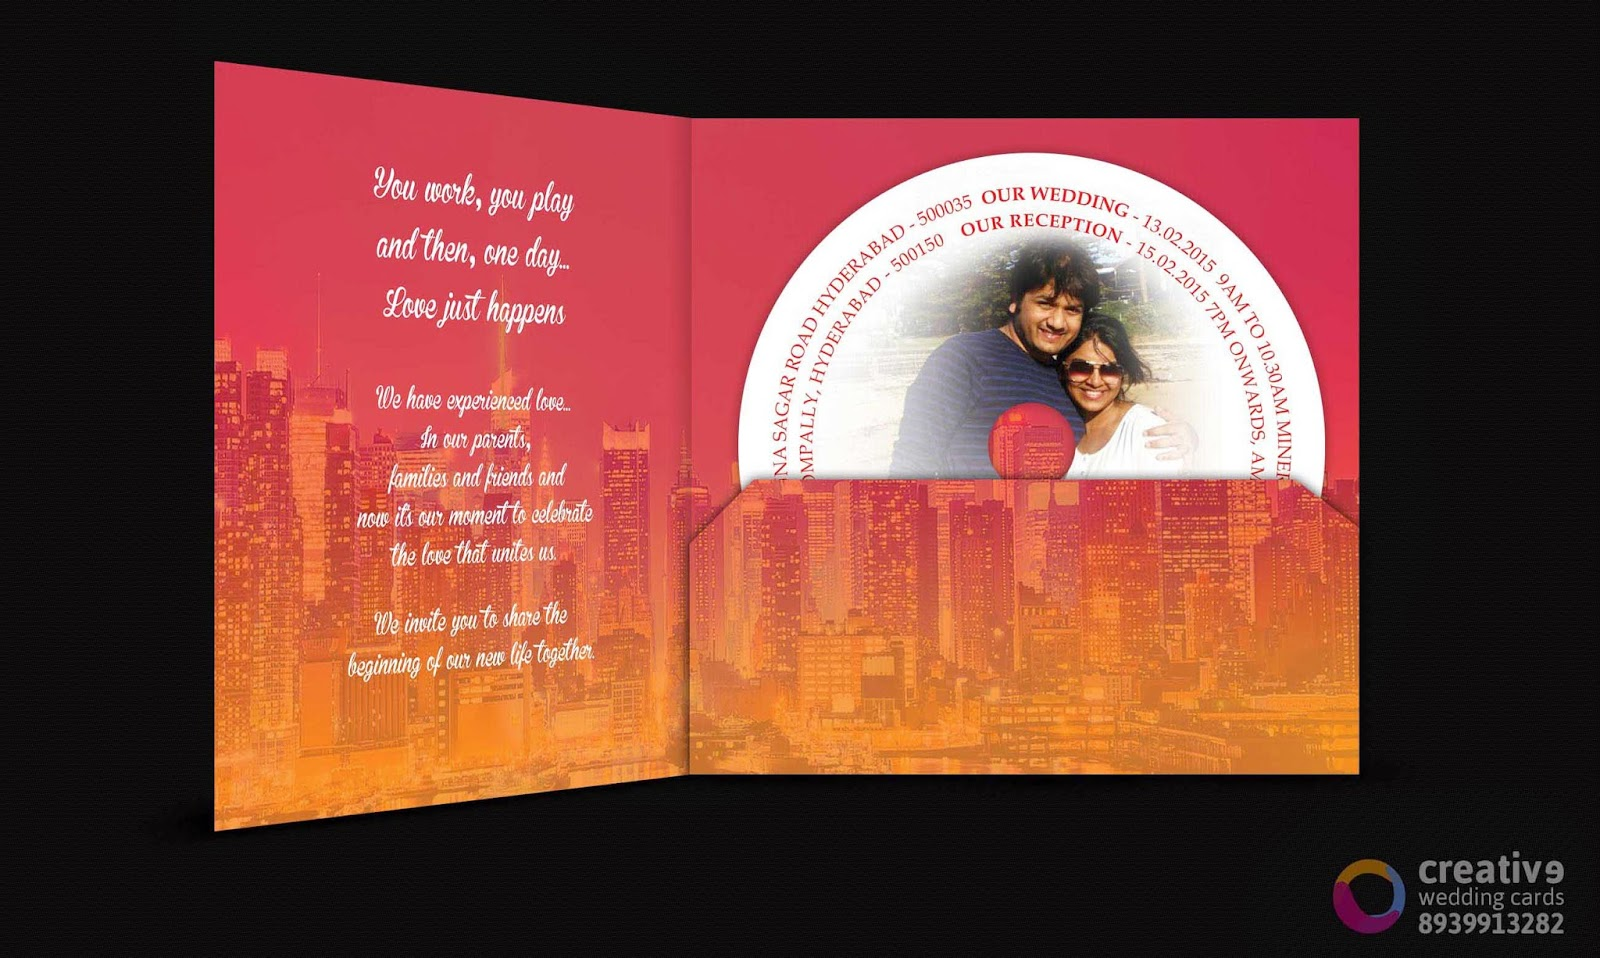 Wedding Invitations In Chennai: Customized-Wedding-Invitation-Chennai: 2015